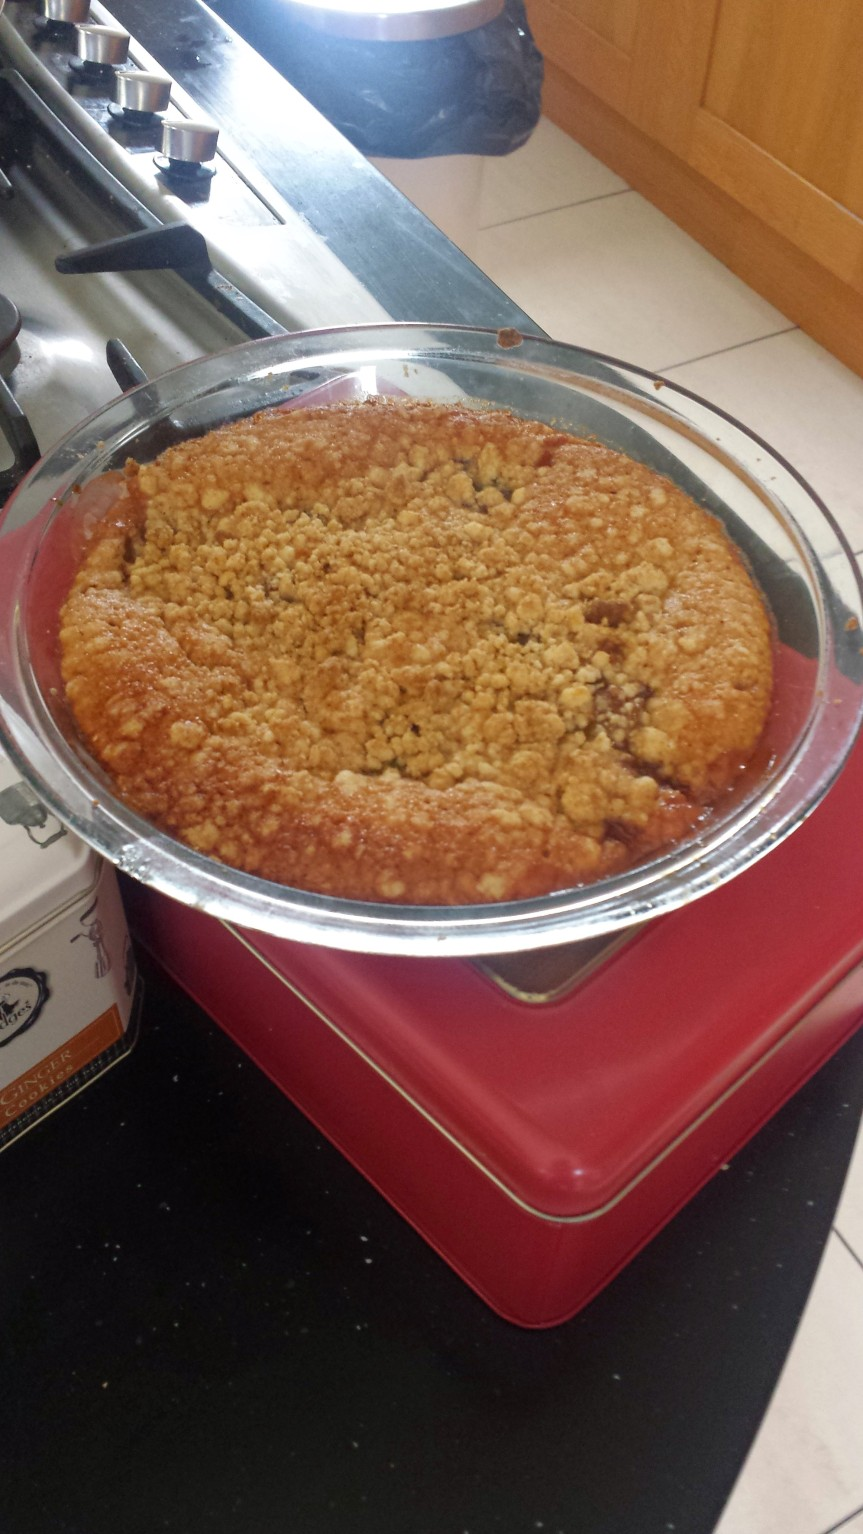 Today I made rhubarb crumble